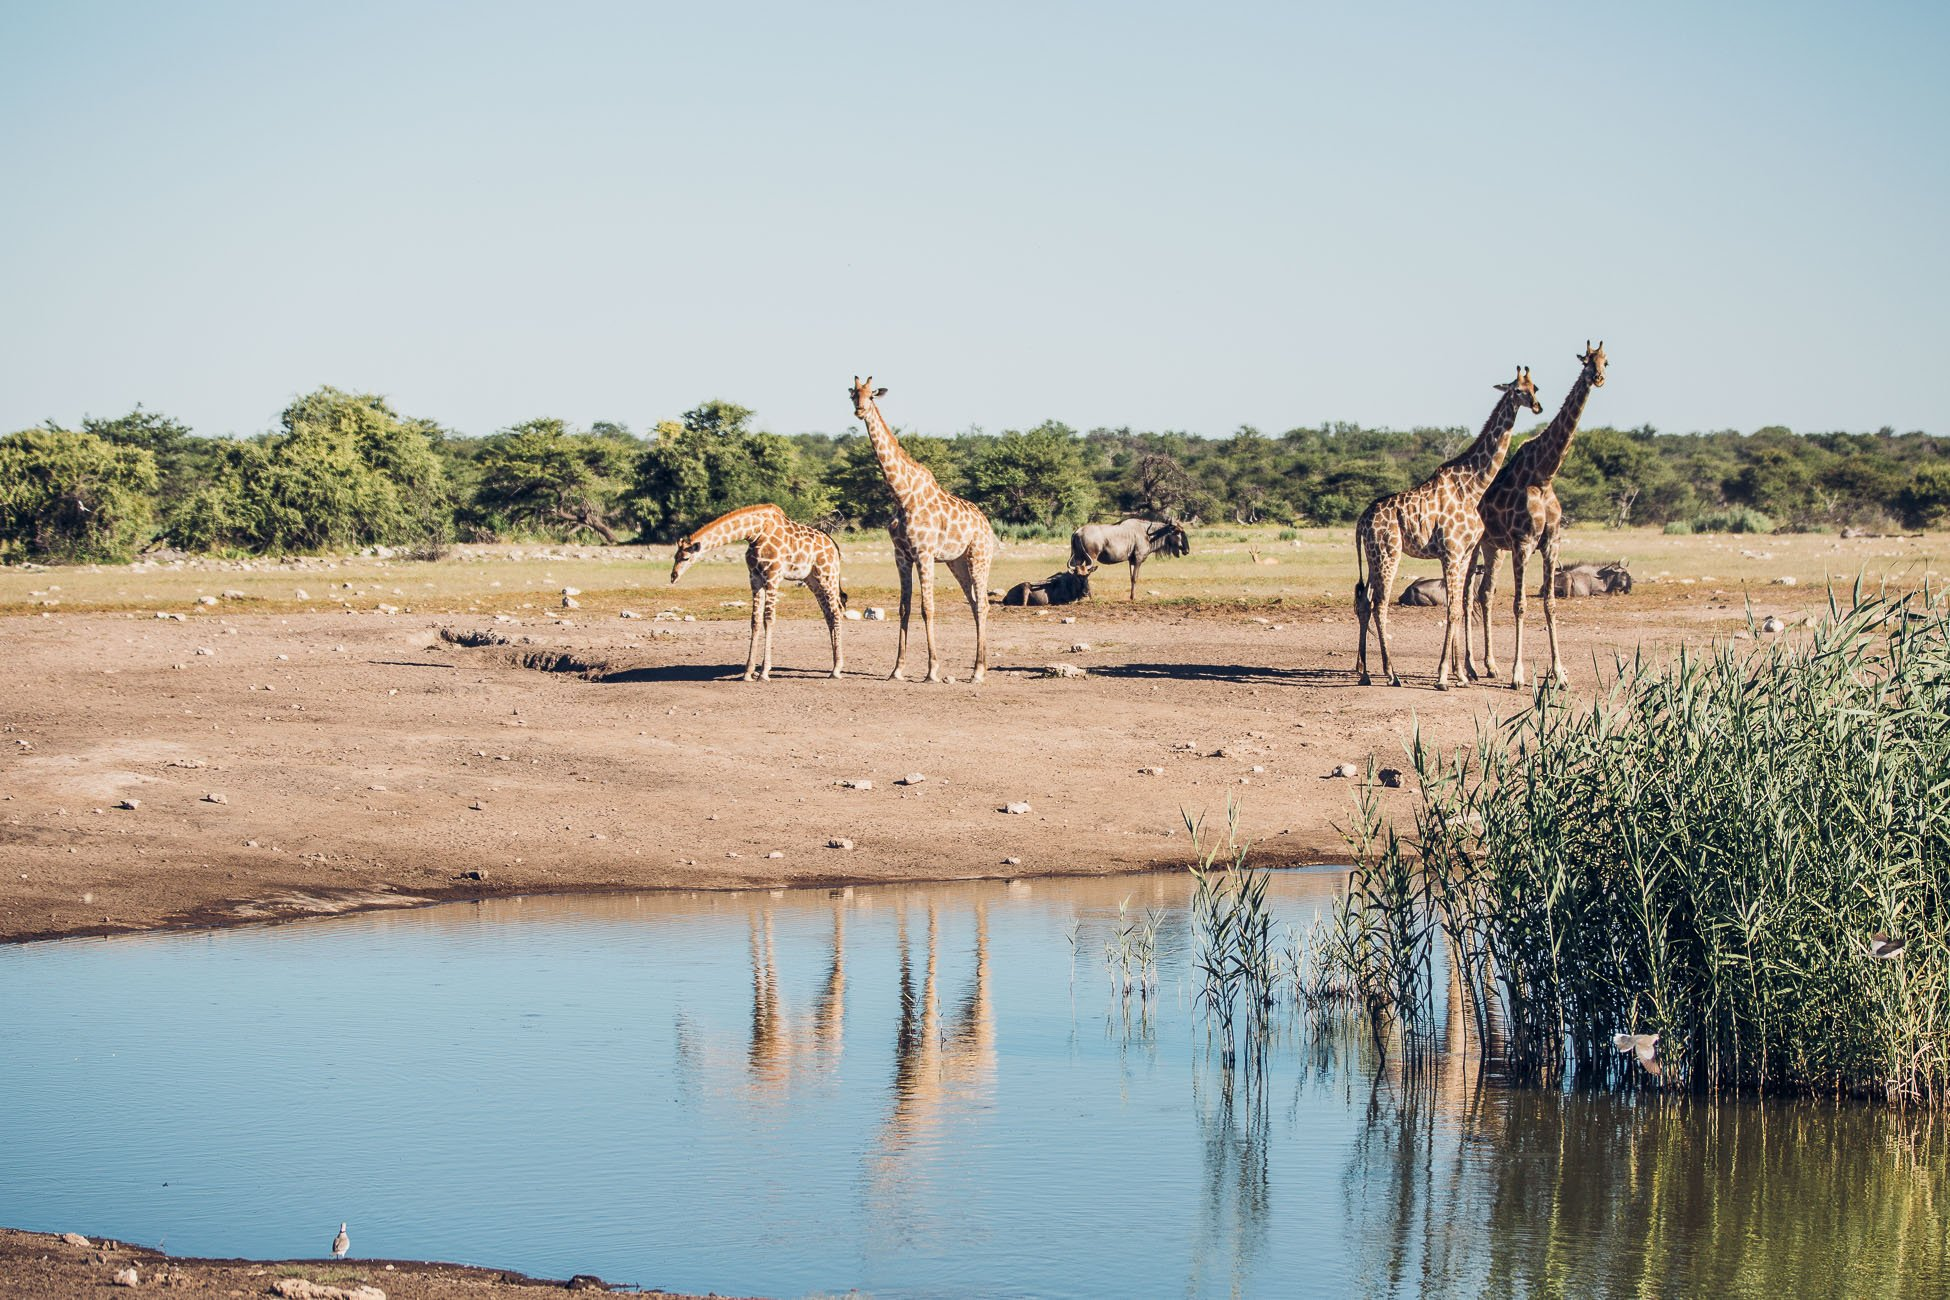 Giraffes at Etosha National Park